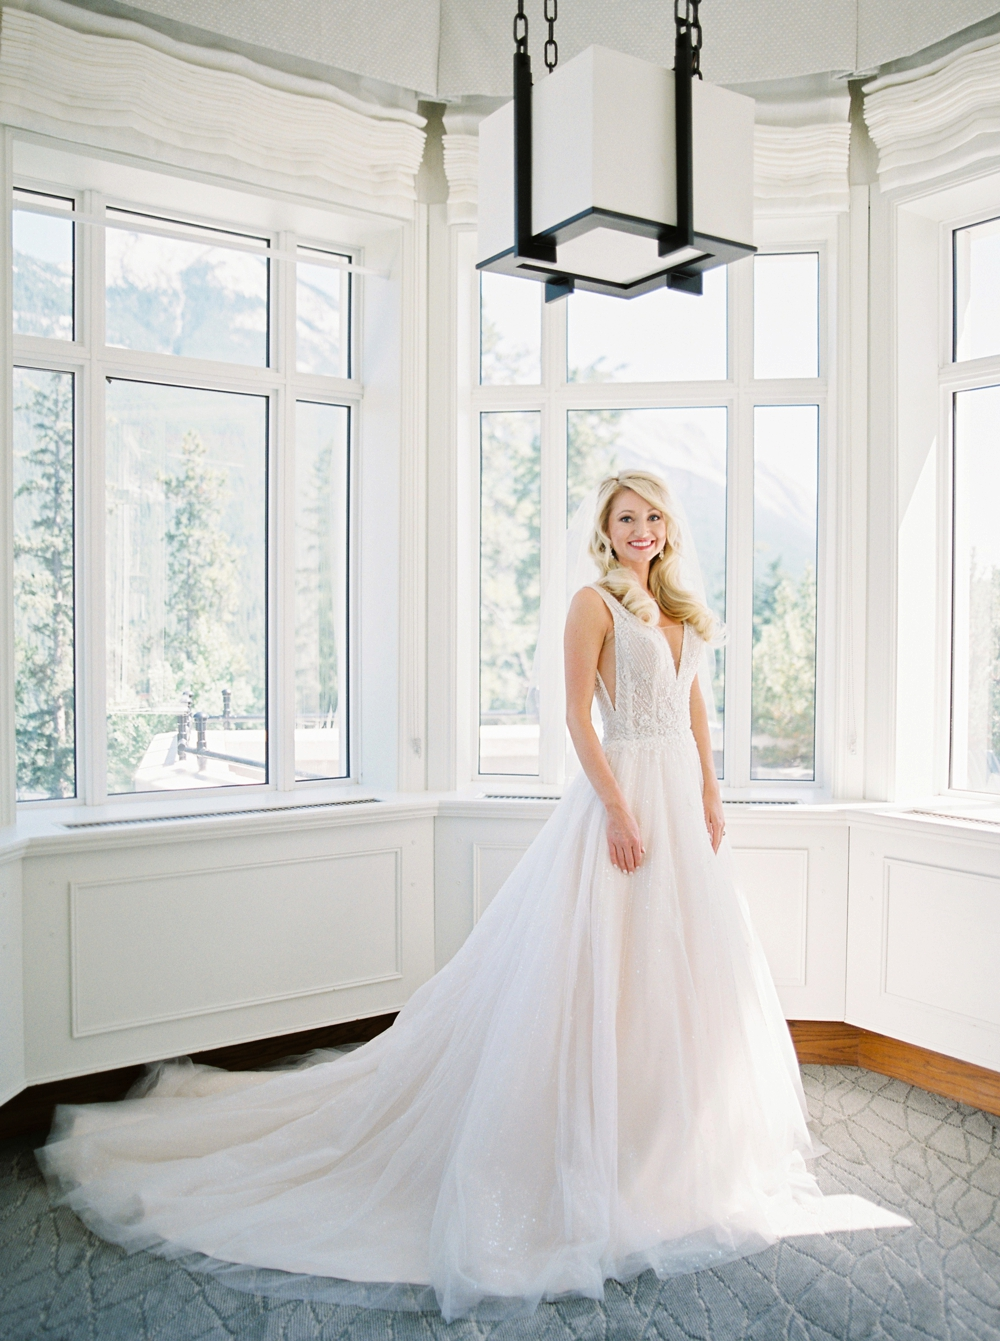 Bride Getting ready bridal portraits at the Fairmont Banff Springs | Banff Wedding Photographers | Justine Milton fine art film photography